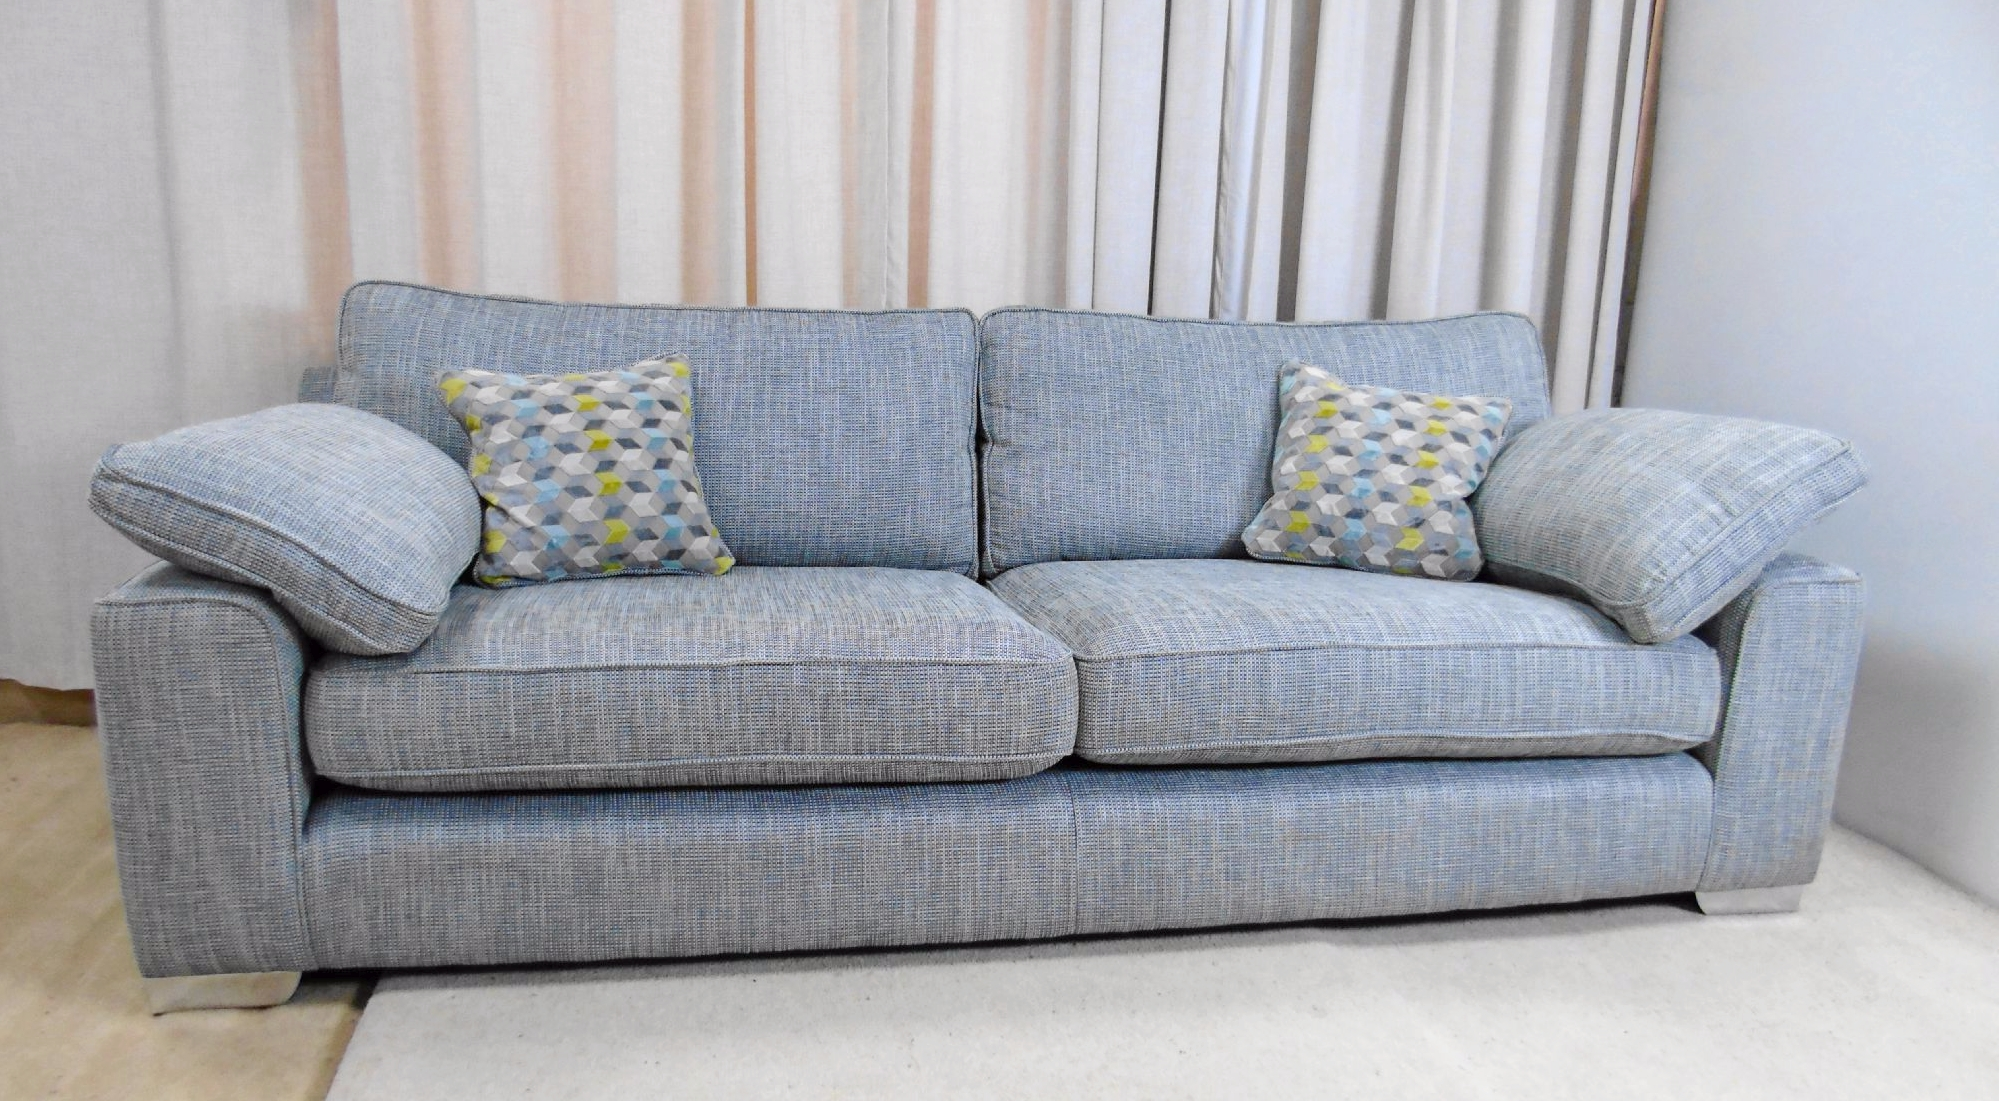 Whitemeadow Loft Large 4 Seater Sofa Within Best And Newest Large 4 Seater Sofas (View 15 of 15)